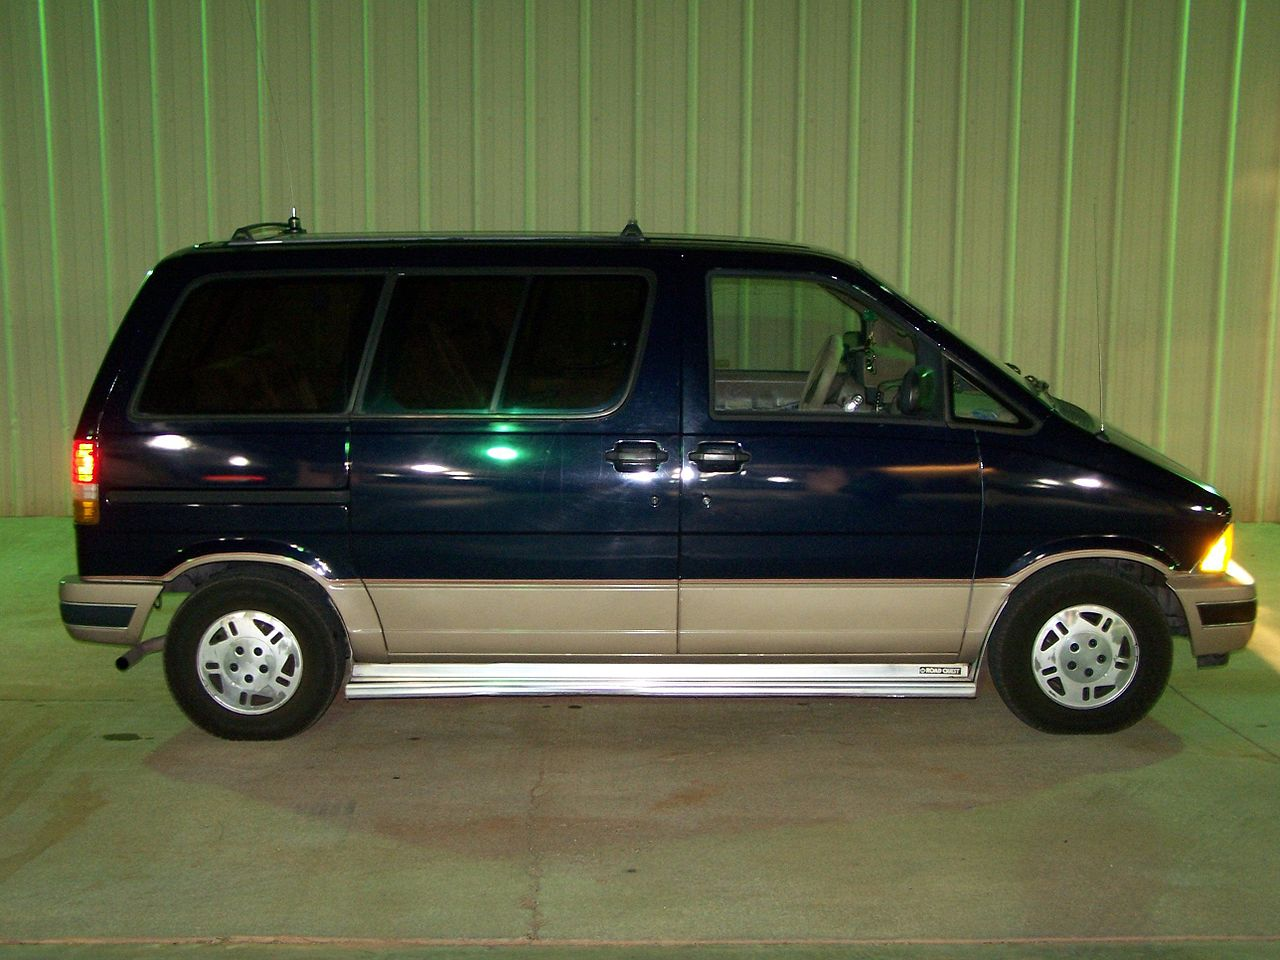 hight resolution of file 1989 aerostar eddie bauer jpg